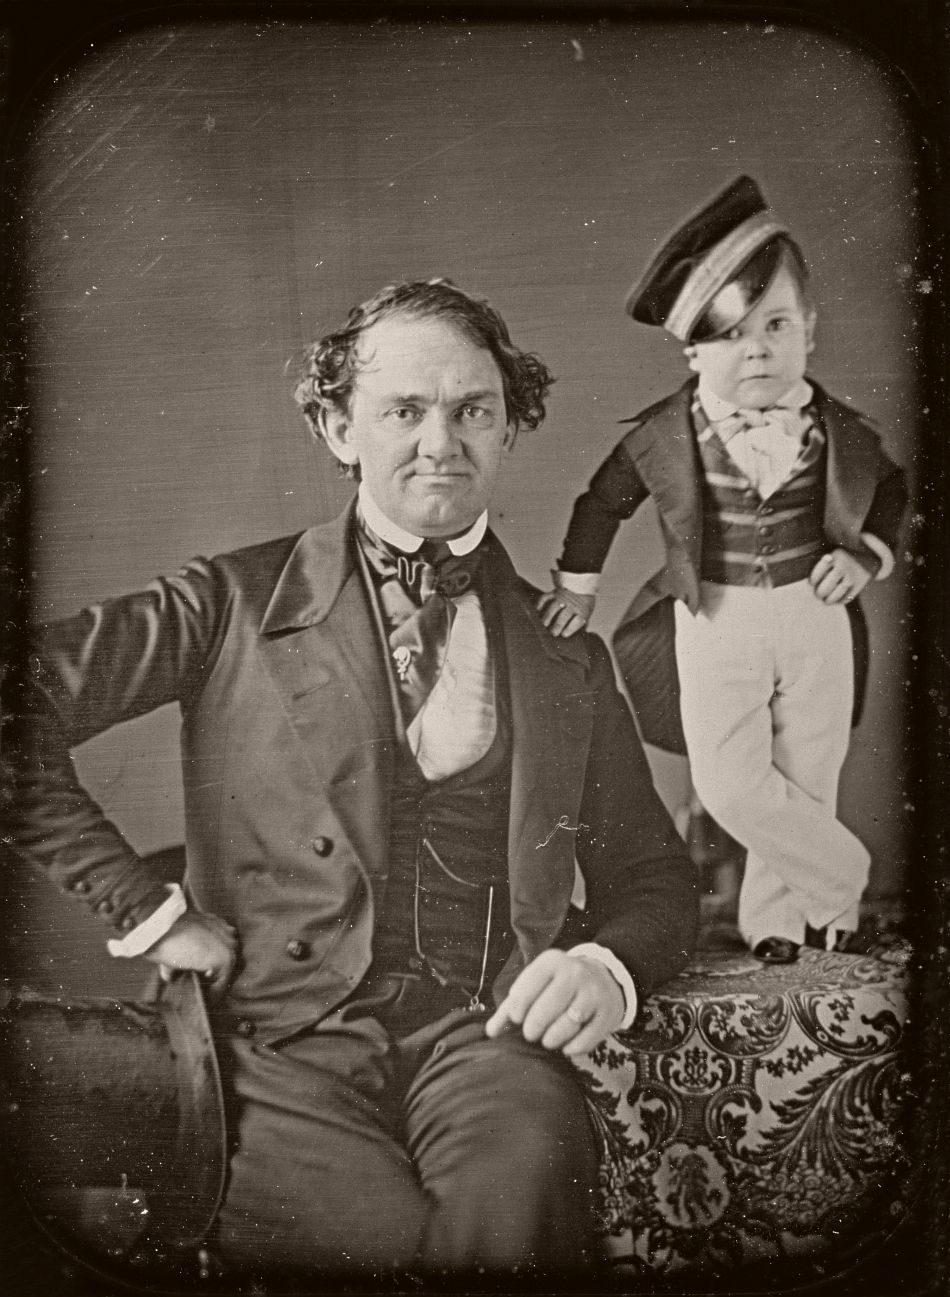 P.T. Barnum and General Tom Thumb, Half-plate daguerreotype, circa 1850.